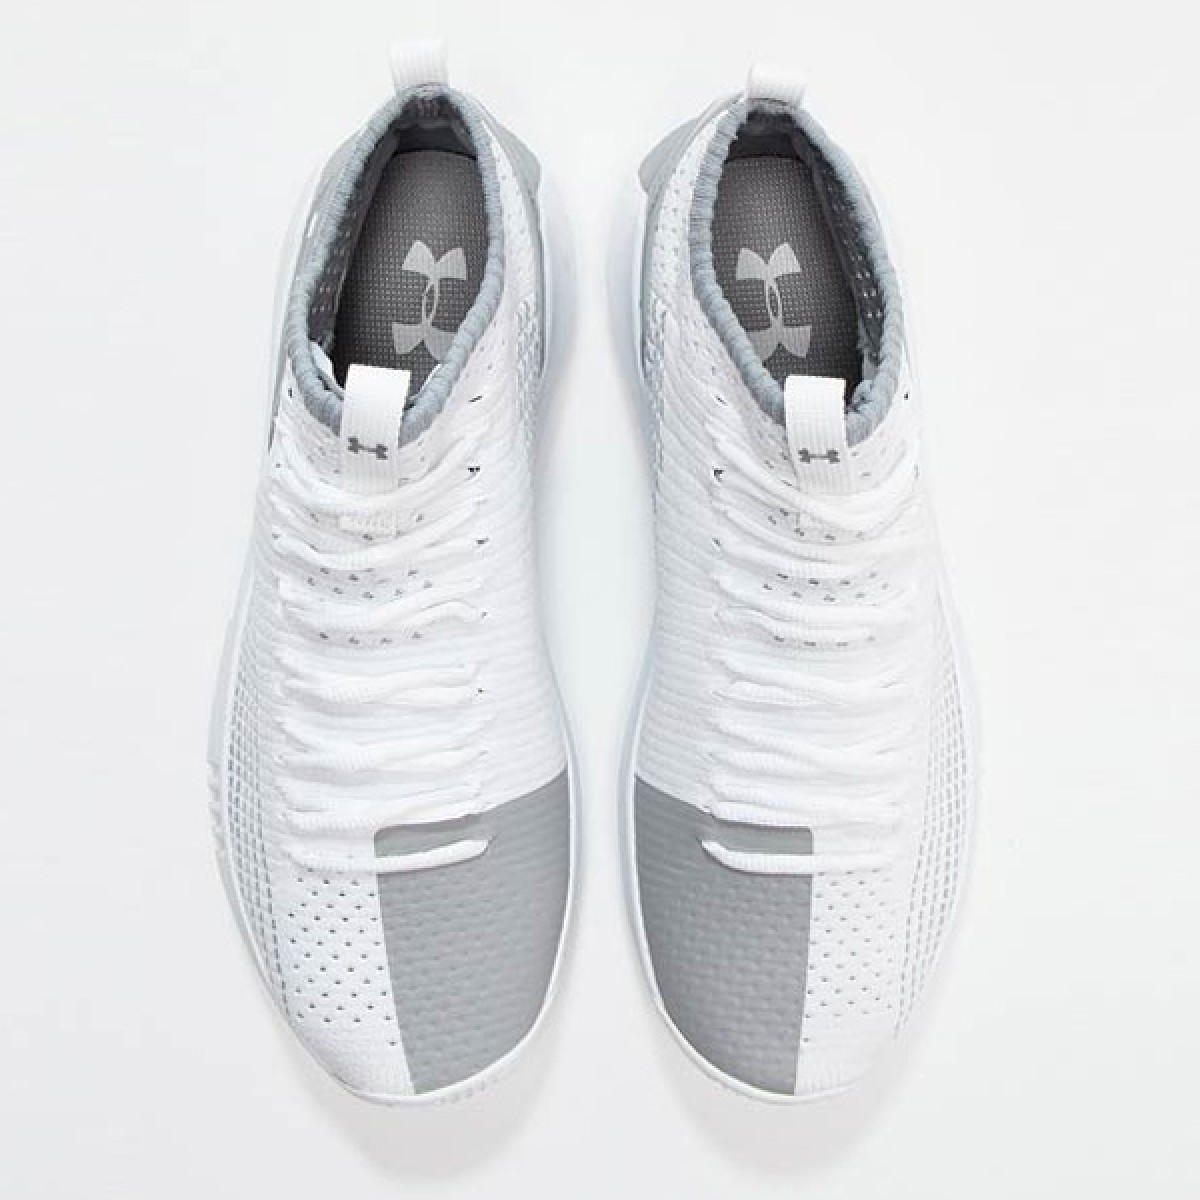 13461cbfe815 Buy Under Armour Heat Seeker  White  Basketball shoes   sneakers